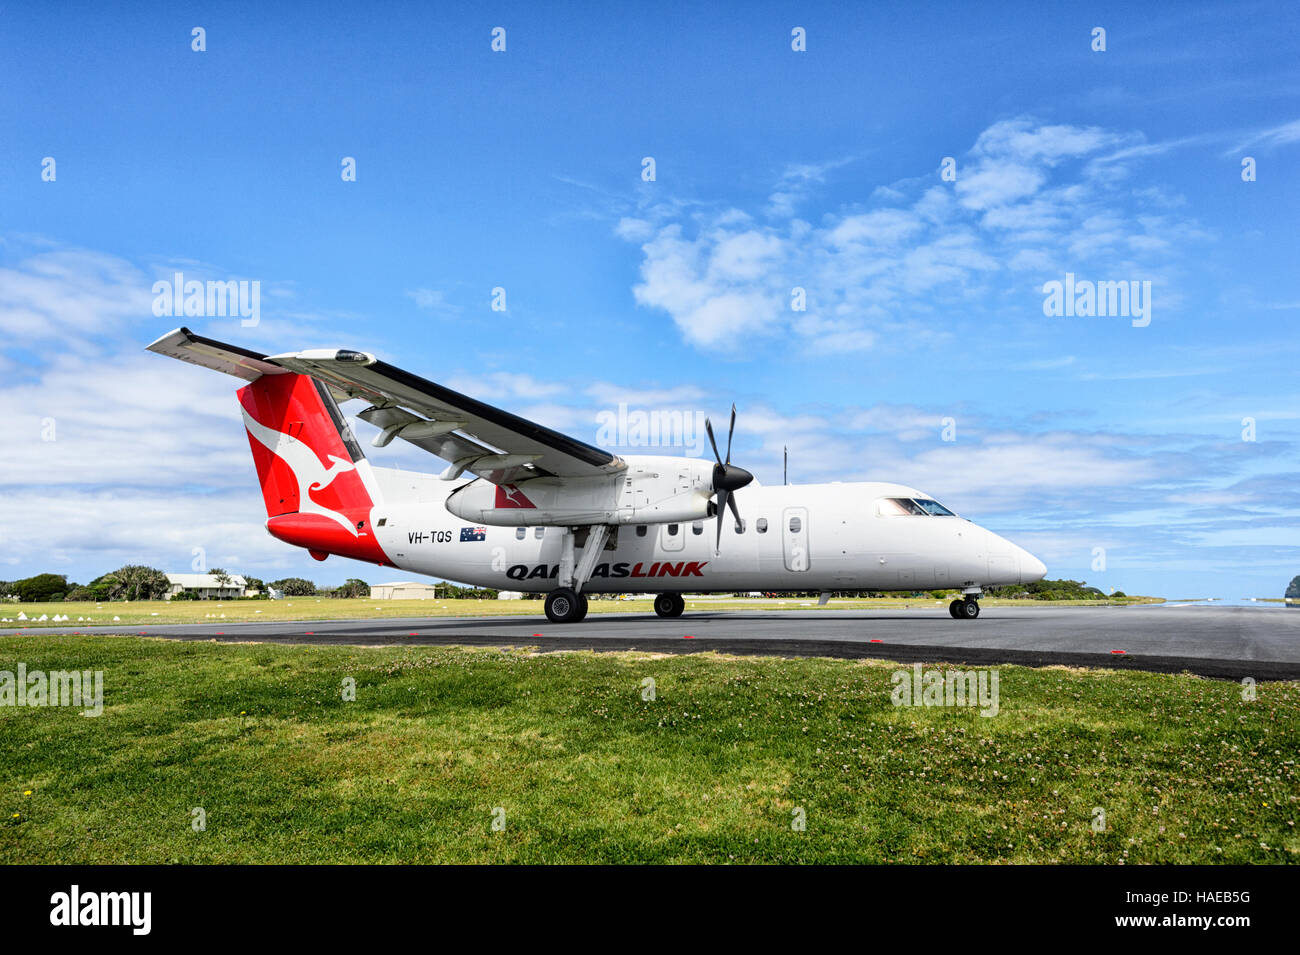 QantasLink de Havilland DHC-8 200 Series DASH 8 Aircraft taxiing on Lord Howe Island runway, New South Wales, Australia - Stock Image